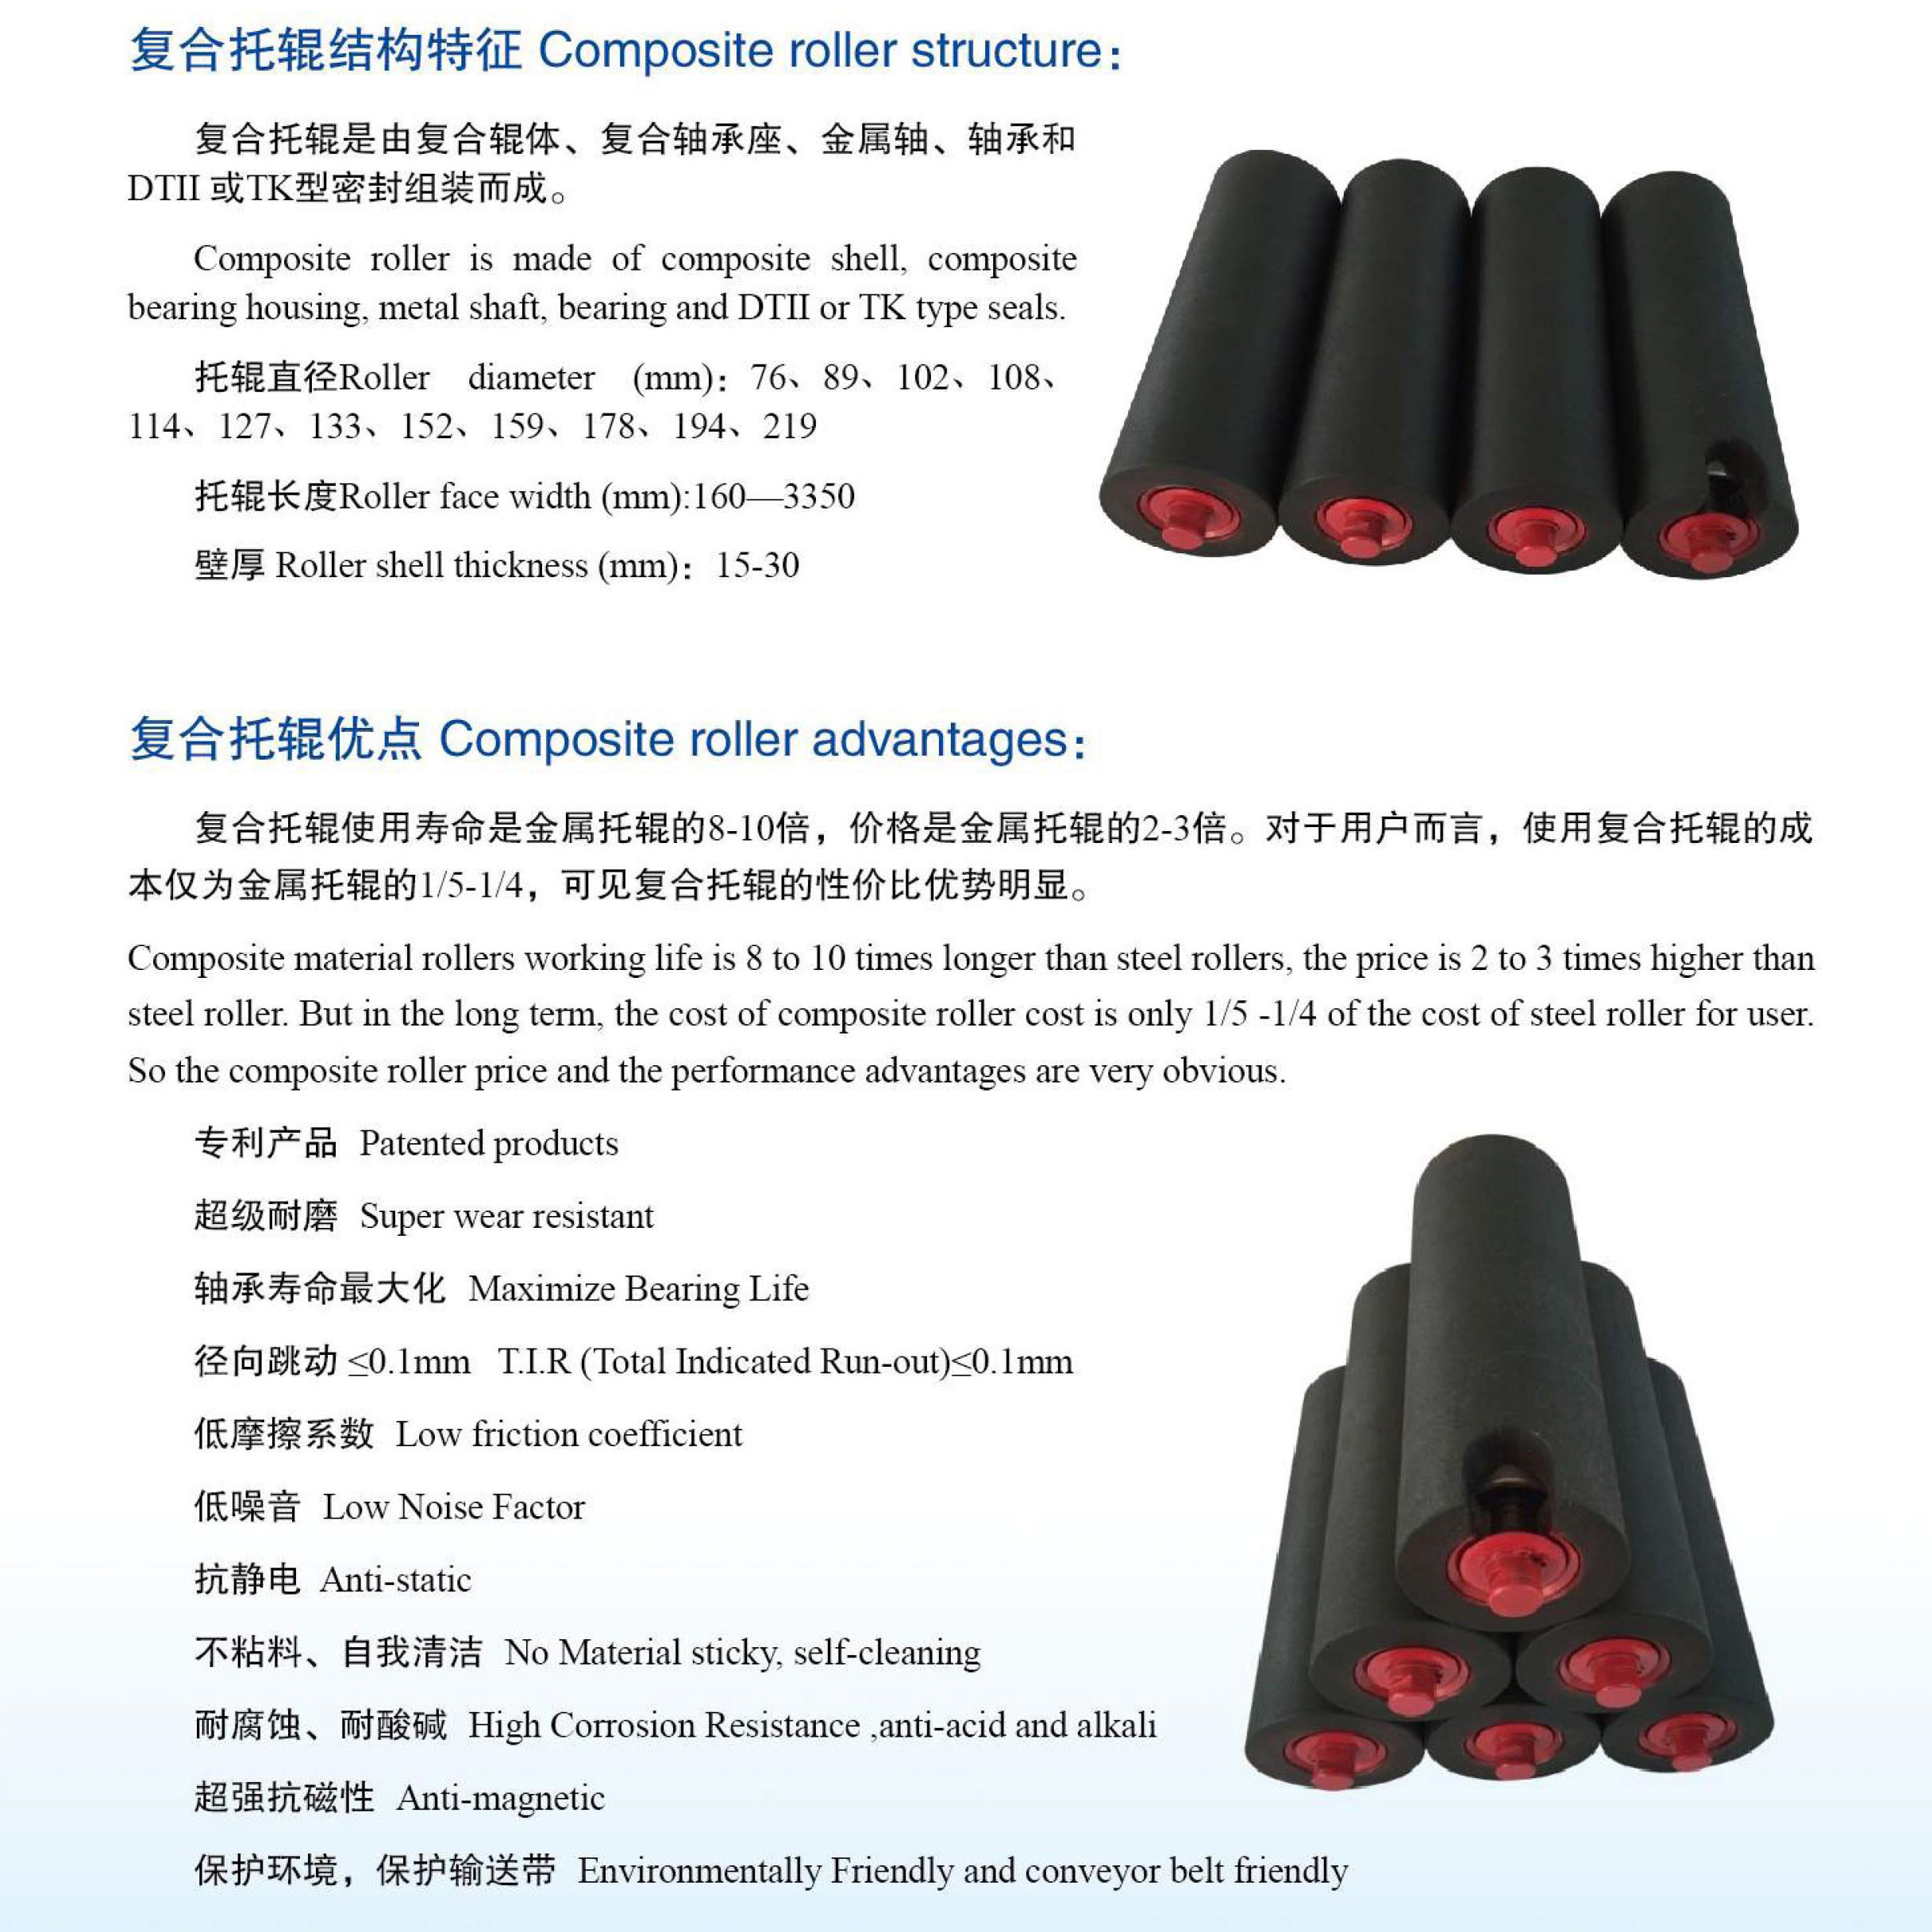 composite roller advantages